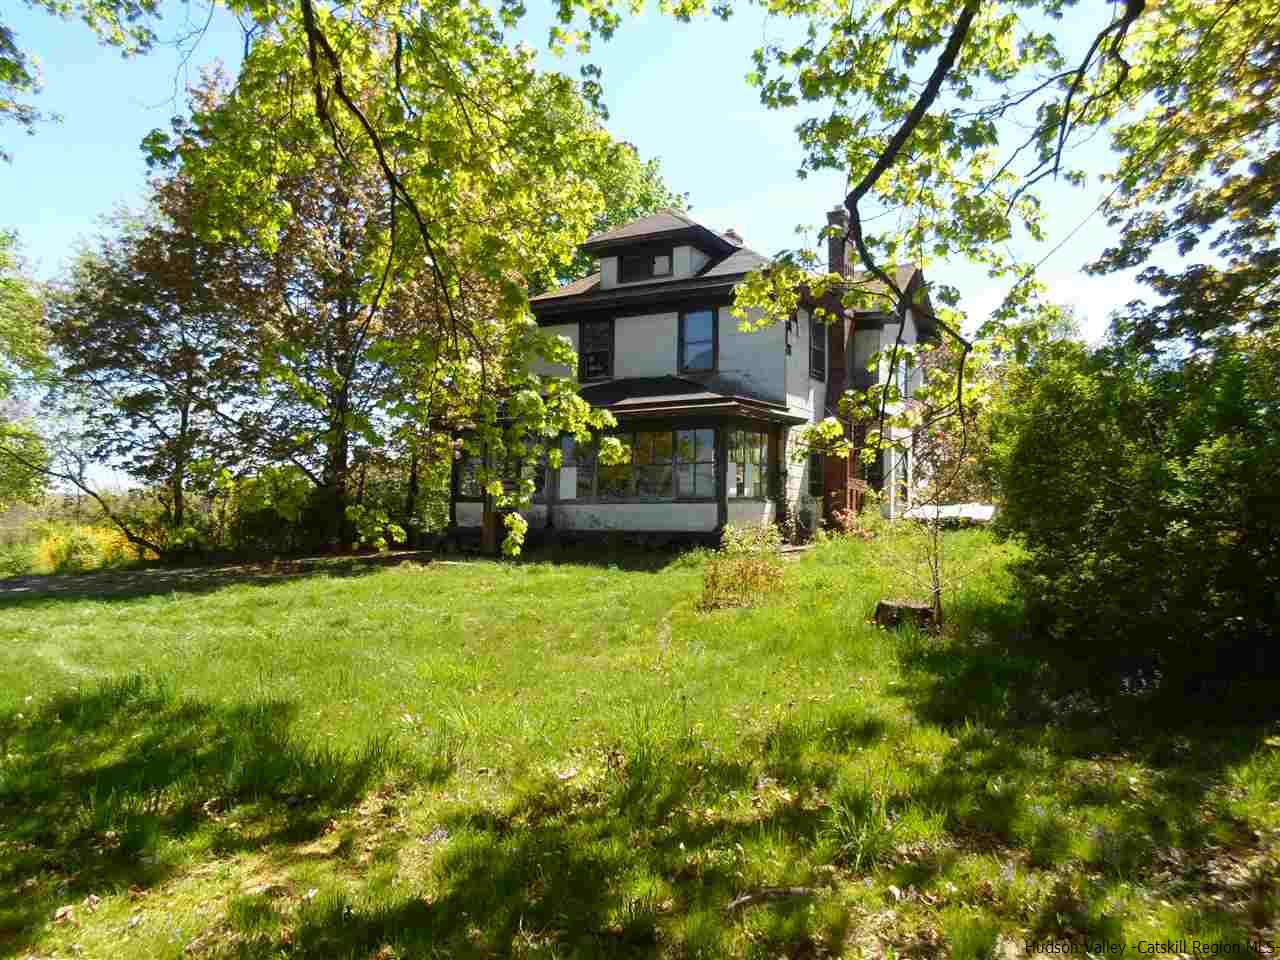 Single Family Home for Sale at 1726 Old Kings Highway Highway 1726 Old Kings Highway Highway Saugerties, New York 12477 United States